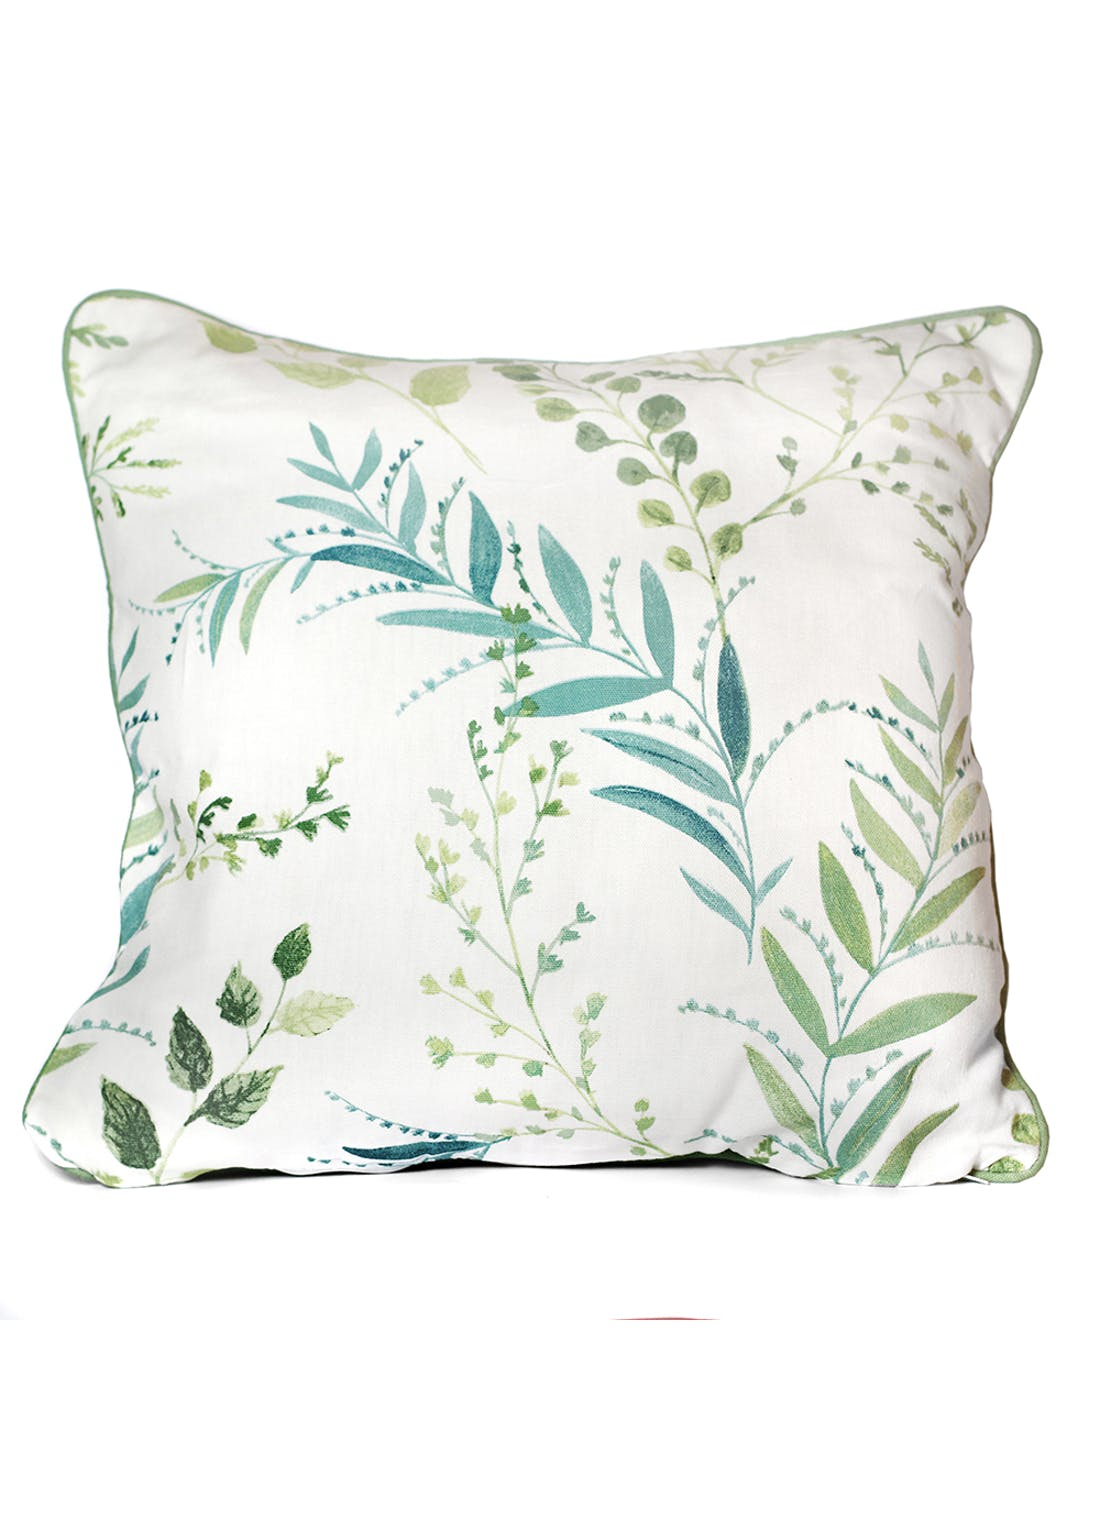 Fusion Fernworthy Cushion (43cm x 43cm)